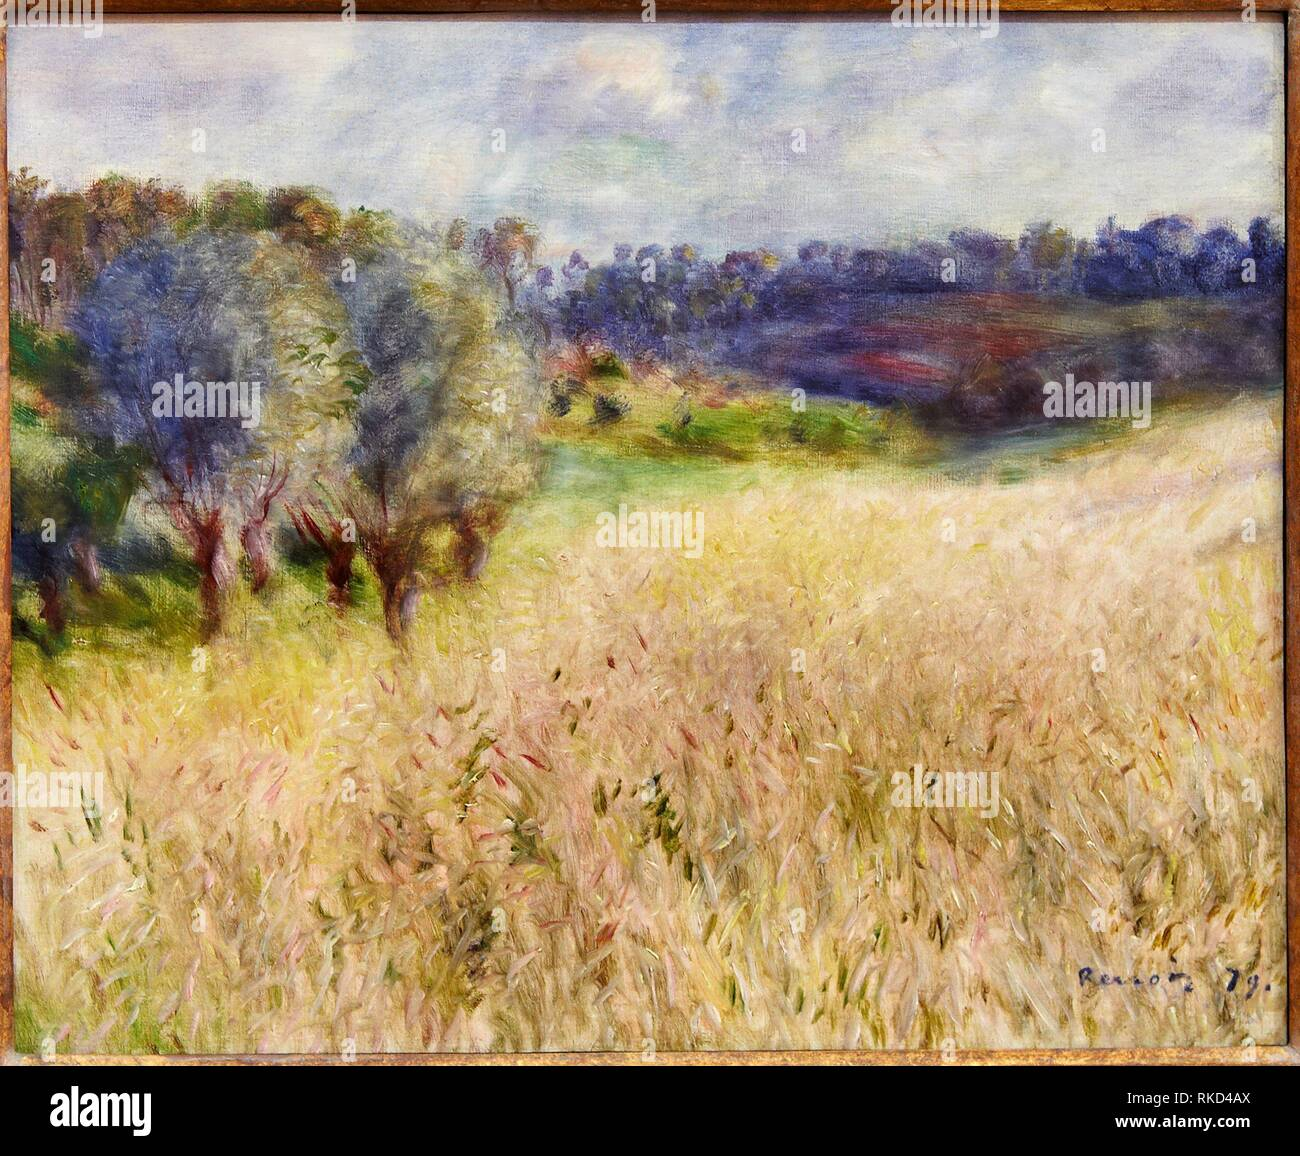 '''Wheat field'', 1879, Pierre-Auguste Renoir, Thyssen Bornemisza Museum, Madrid, Spain - Stock Image